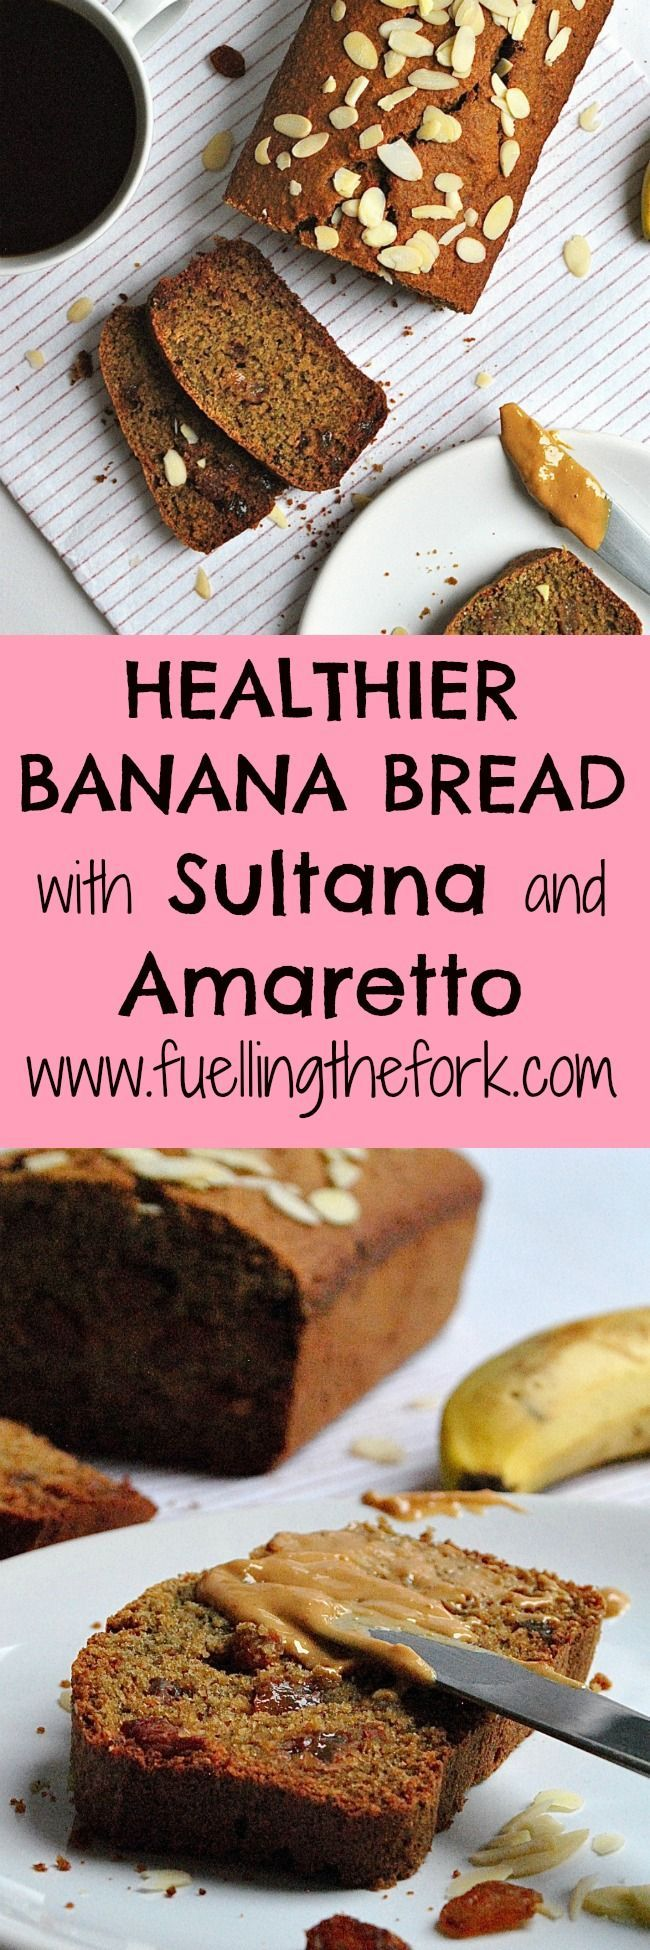 Healthy Banana Bread with Sultanas and Amaretto. This banana bread is gluten, dairy and refined sugar free- perfect for a mid afternoon treat, you would never guess this was a healthier bake! #bananabread #healthy #healthyrecipe #healthybananabread #bread #recipe   fuelllingthefork.com